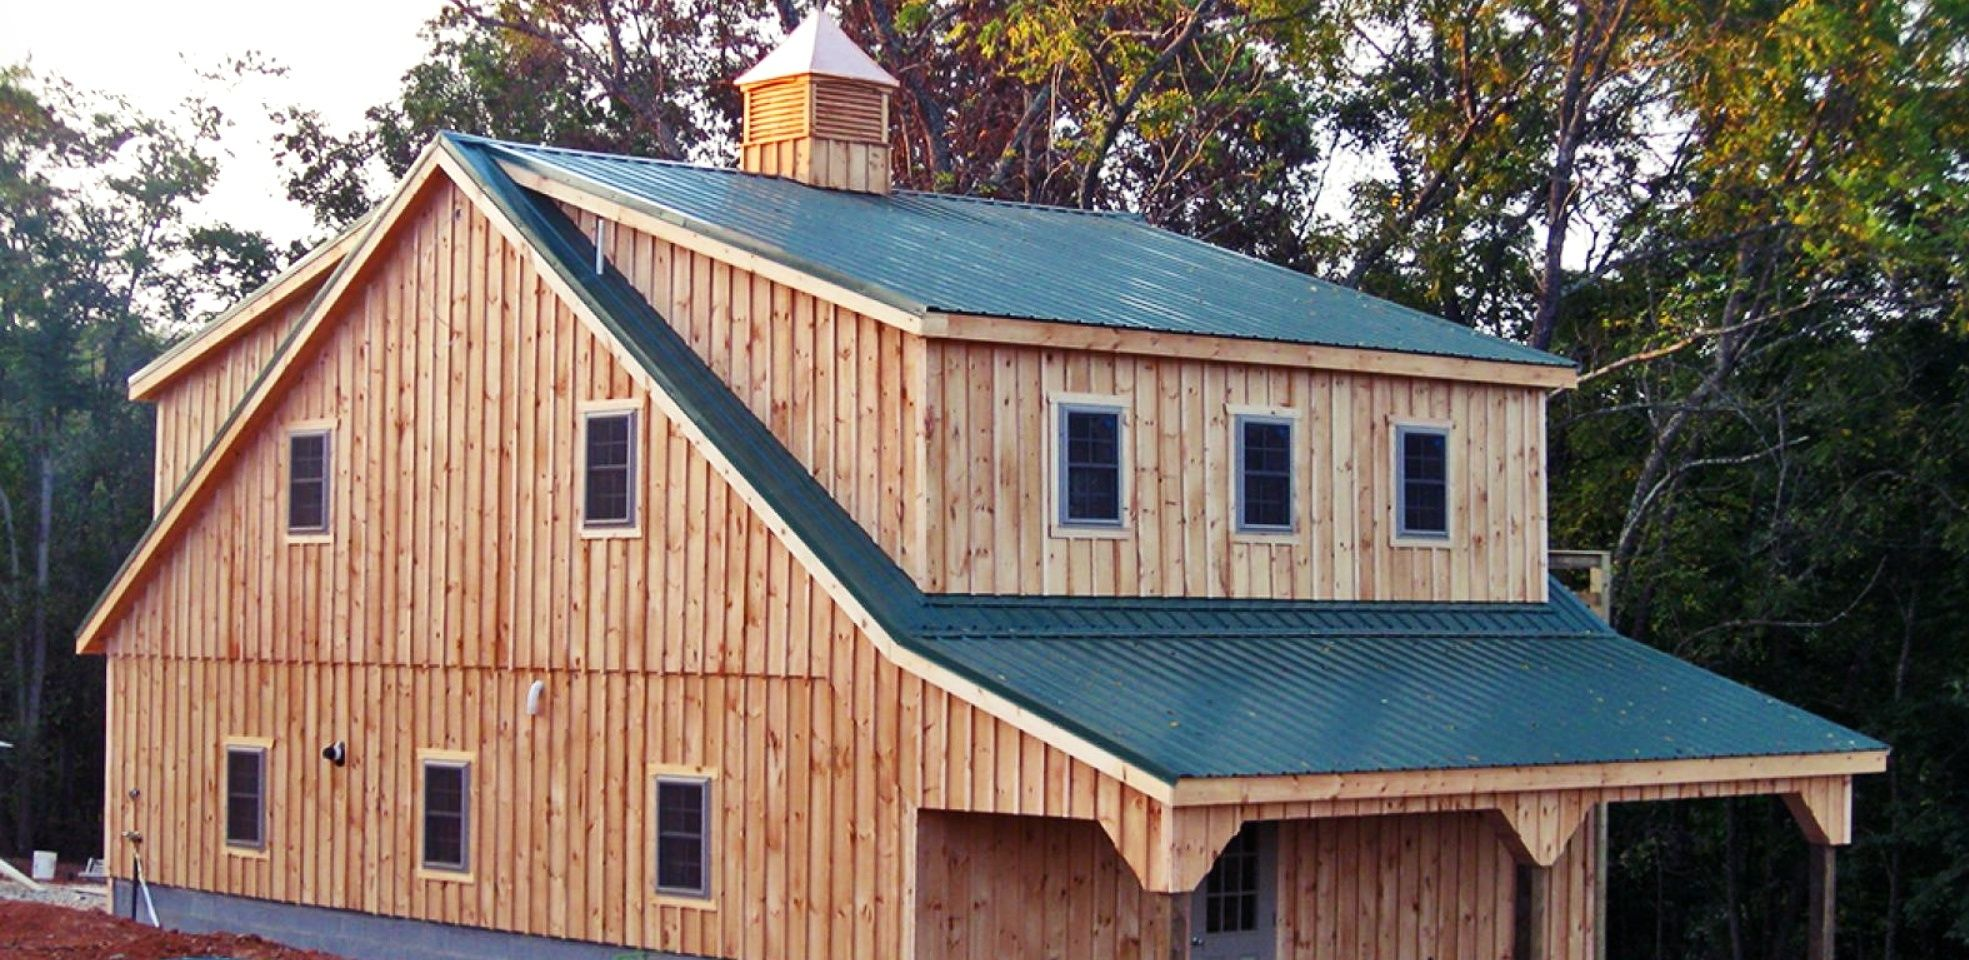 Find Best Siding Contractor And Product Company Siding Contractors Board And Batten Siding Siding